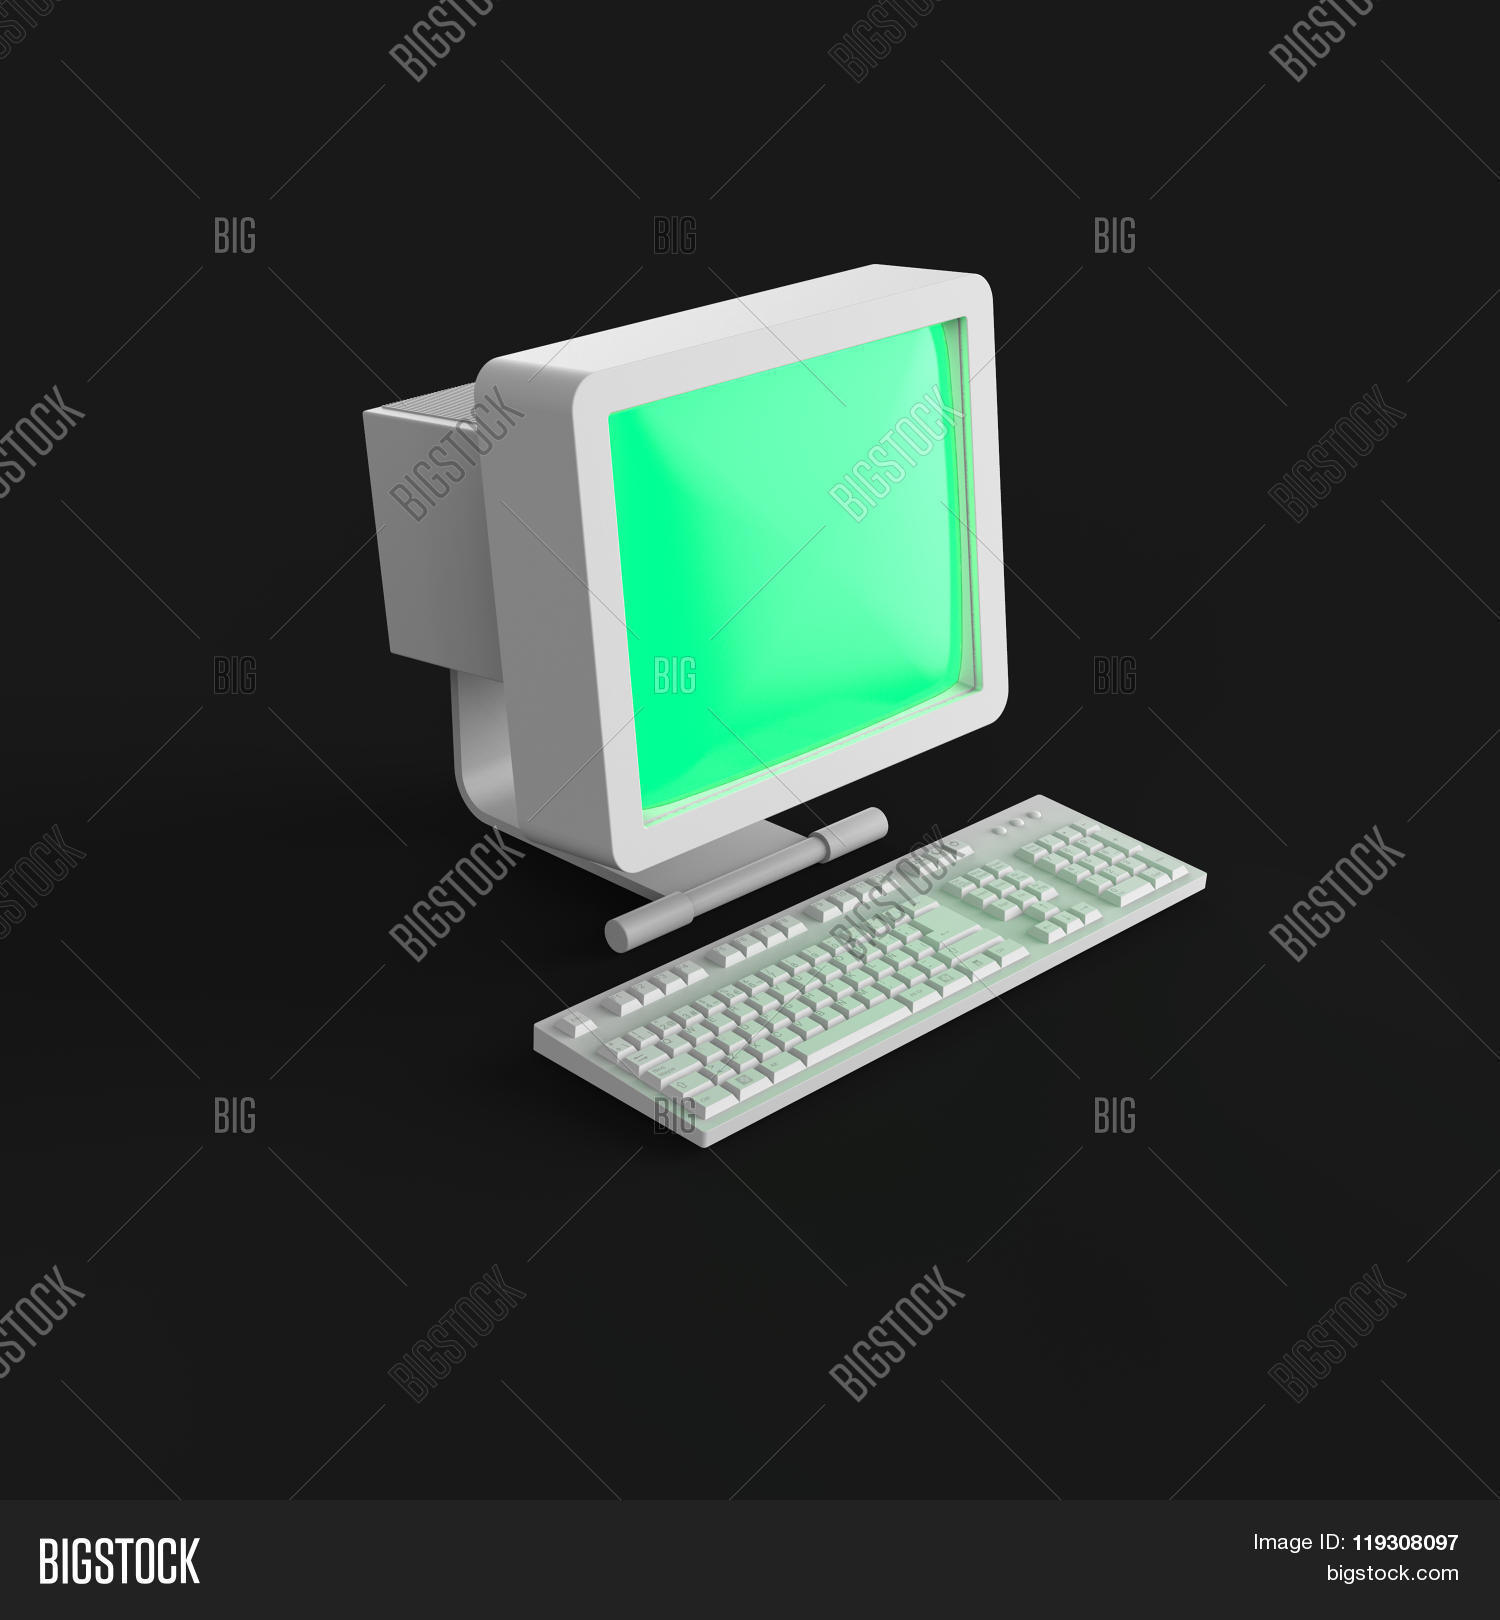 Old PC CRT Monitor Image & Photo (Free Trial)   Bigstock